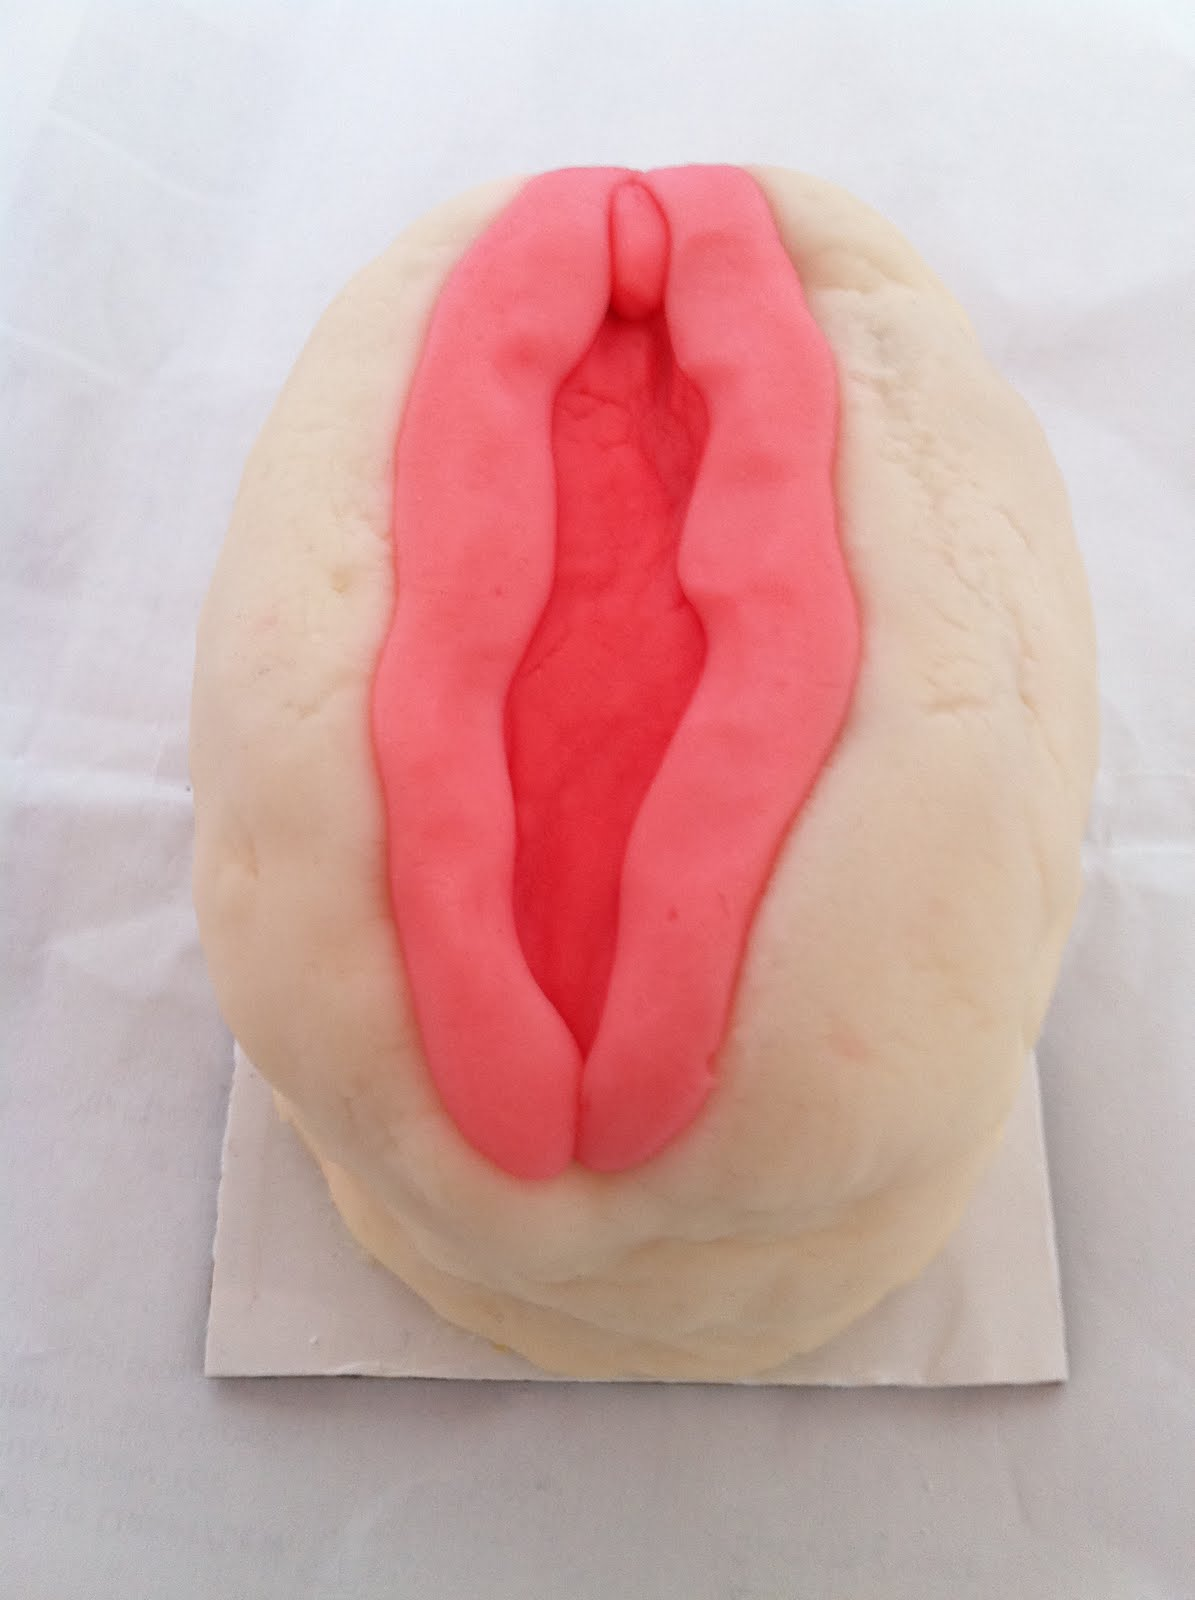 vagina cake another view